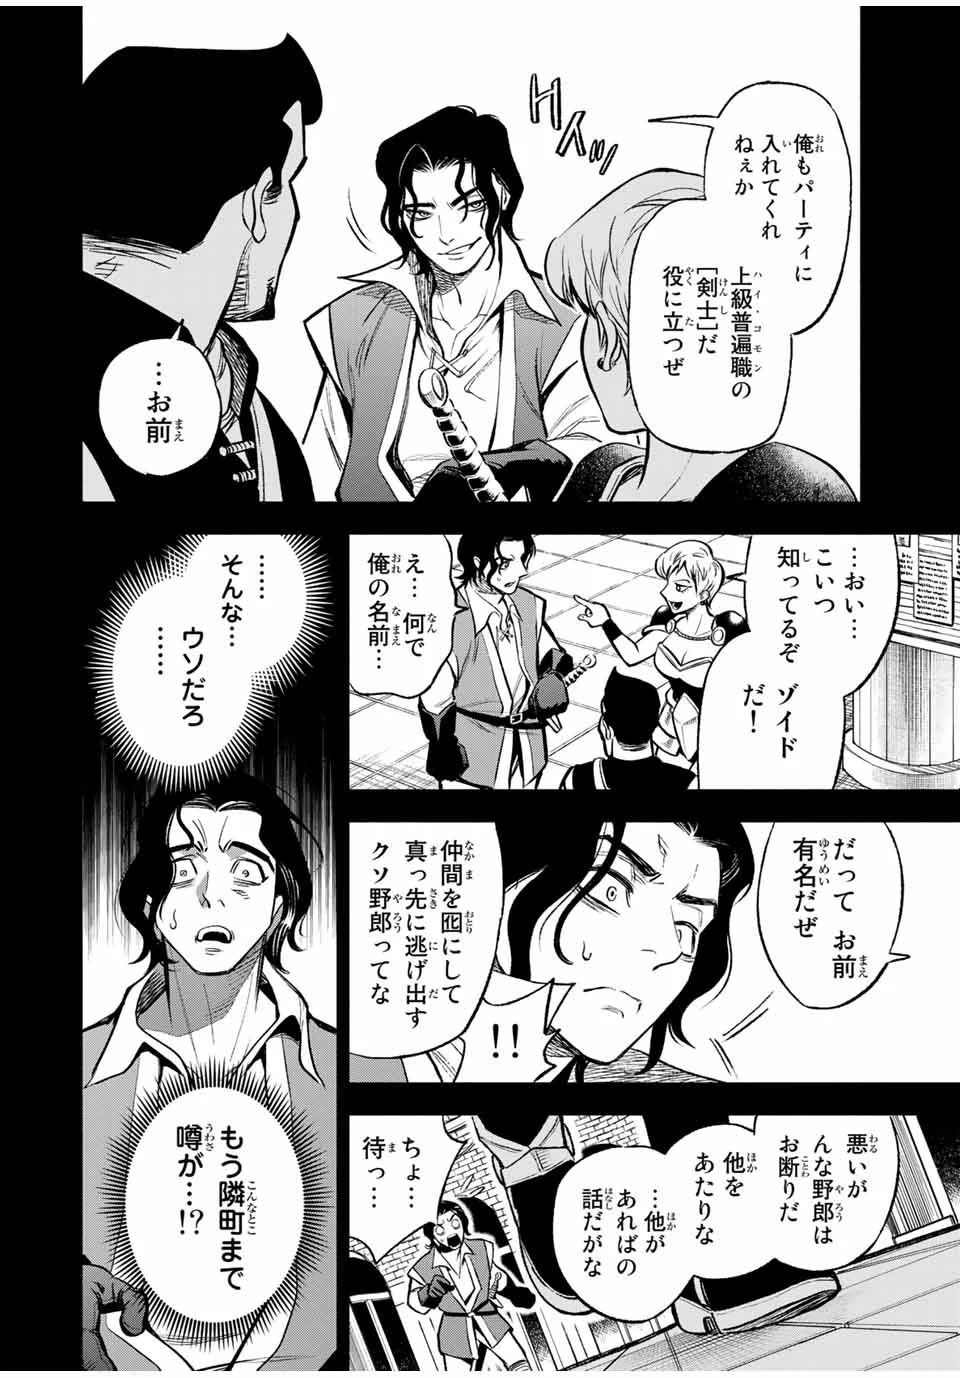 Manga Raw The Unfavorable Job Appraiser was actually the trongest Manga Chapter 13.1